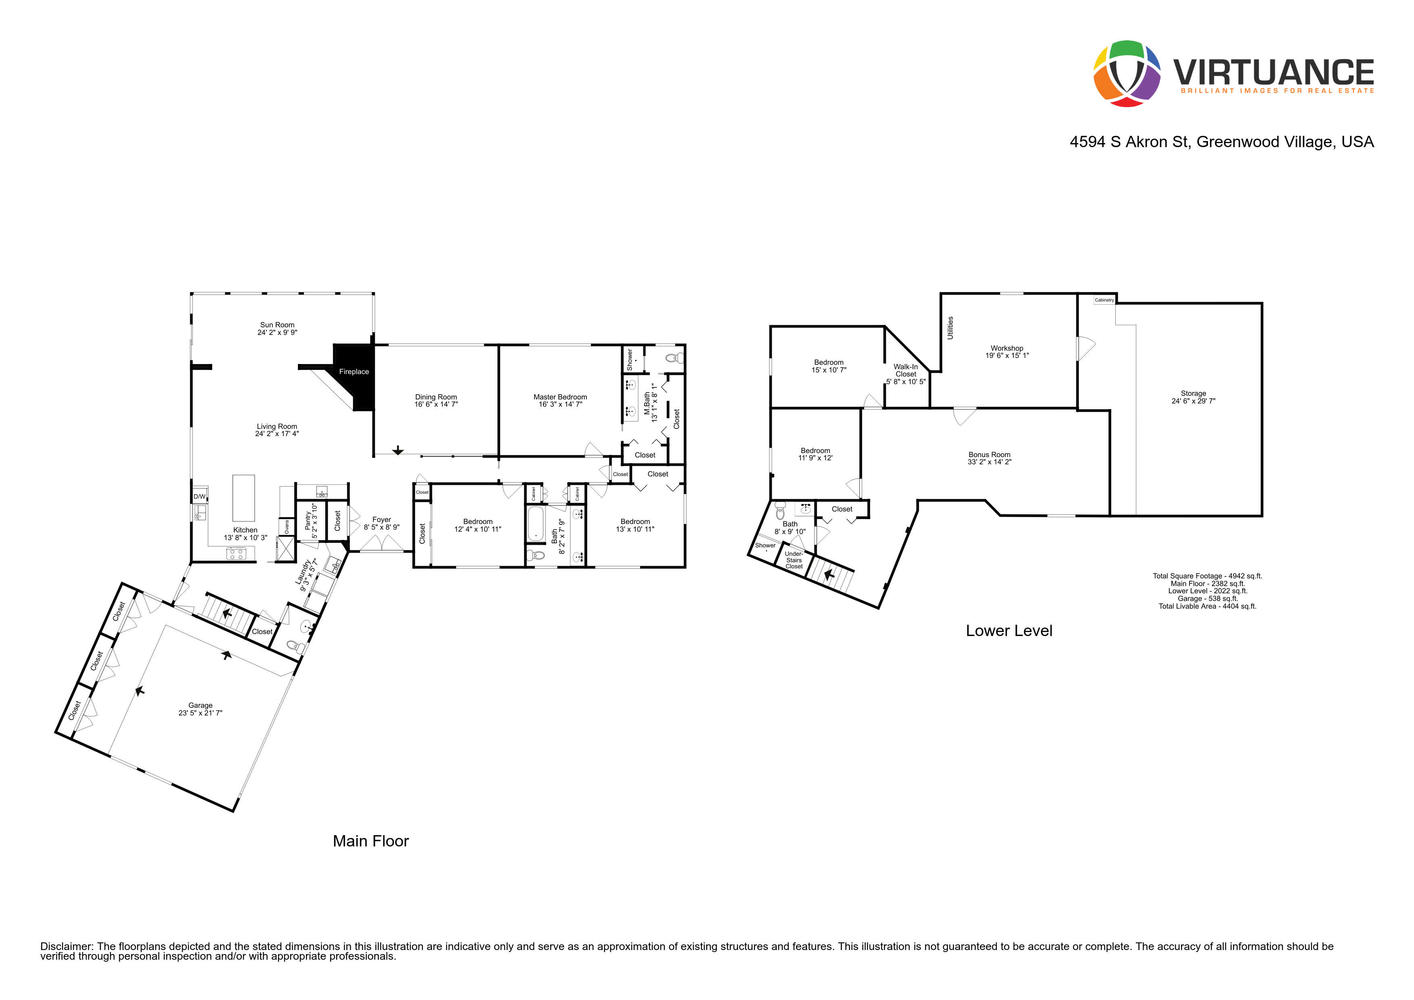 Interactive floor plan and more pictures available of 4594 S Akron St in the Cherry Creek Village Neighborhood